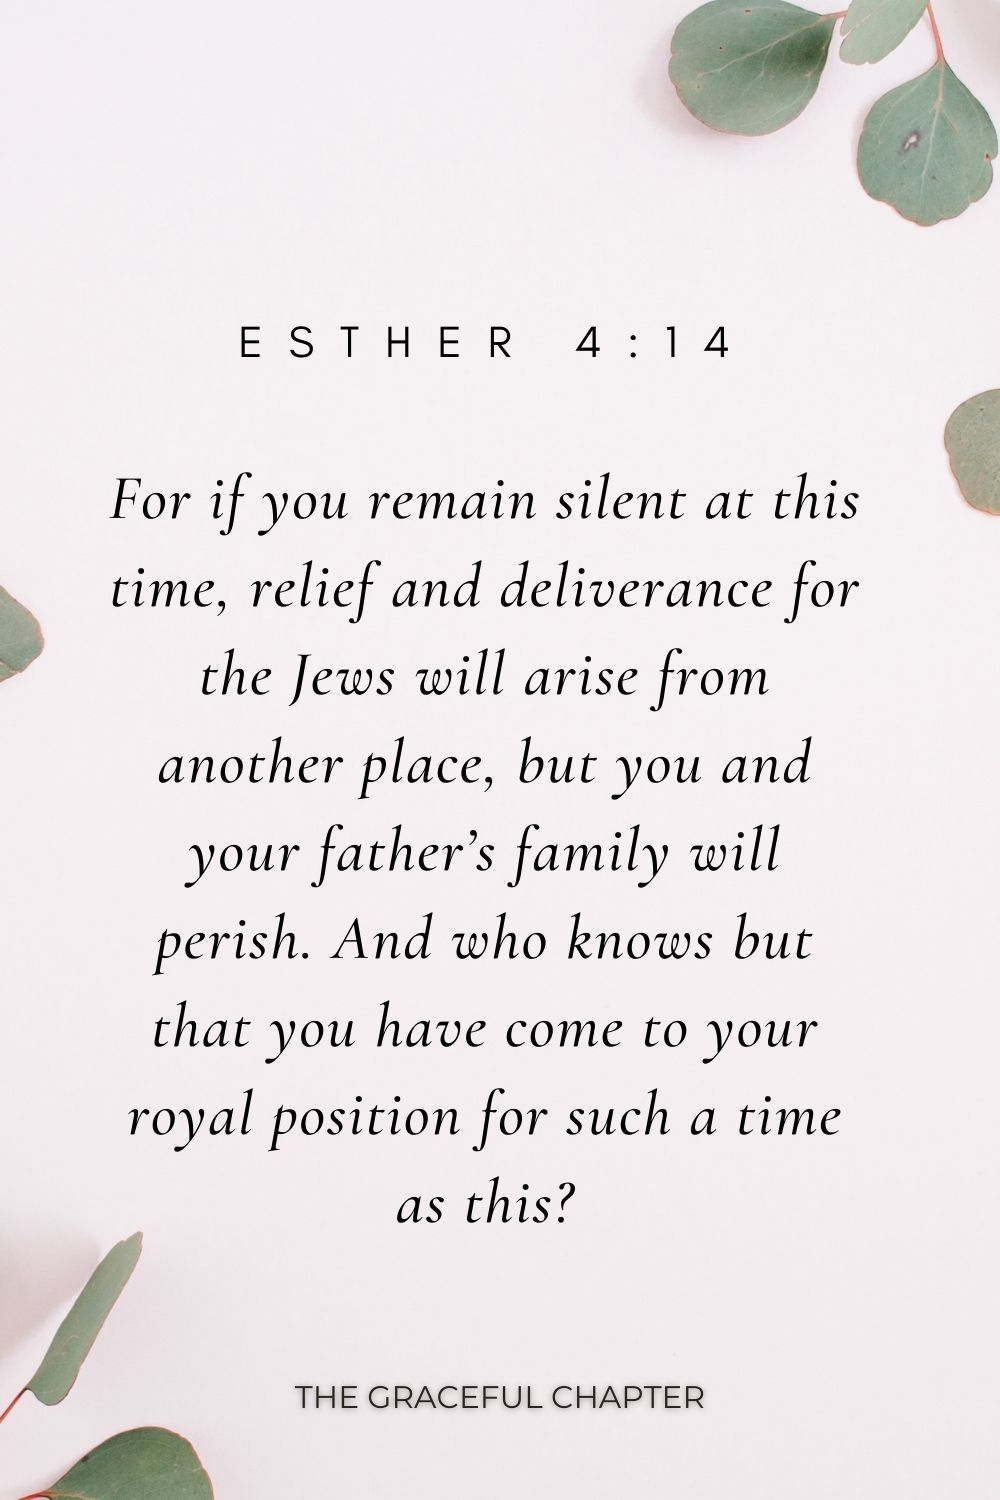 For if you remain silent at this time, relief and deliverance for the Jews will arise from another place, but you and your father's family will perish. And who knows but that you have come to your royal position for such a time as this? Esther 4:14